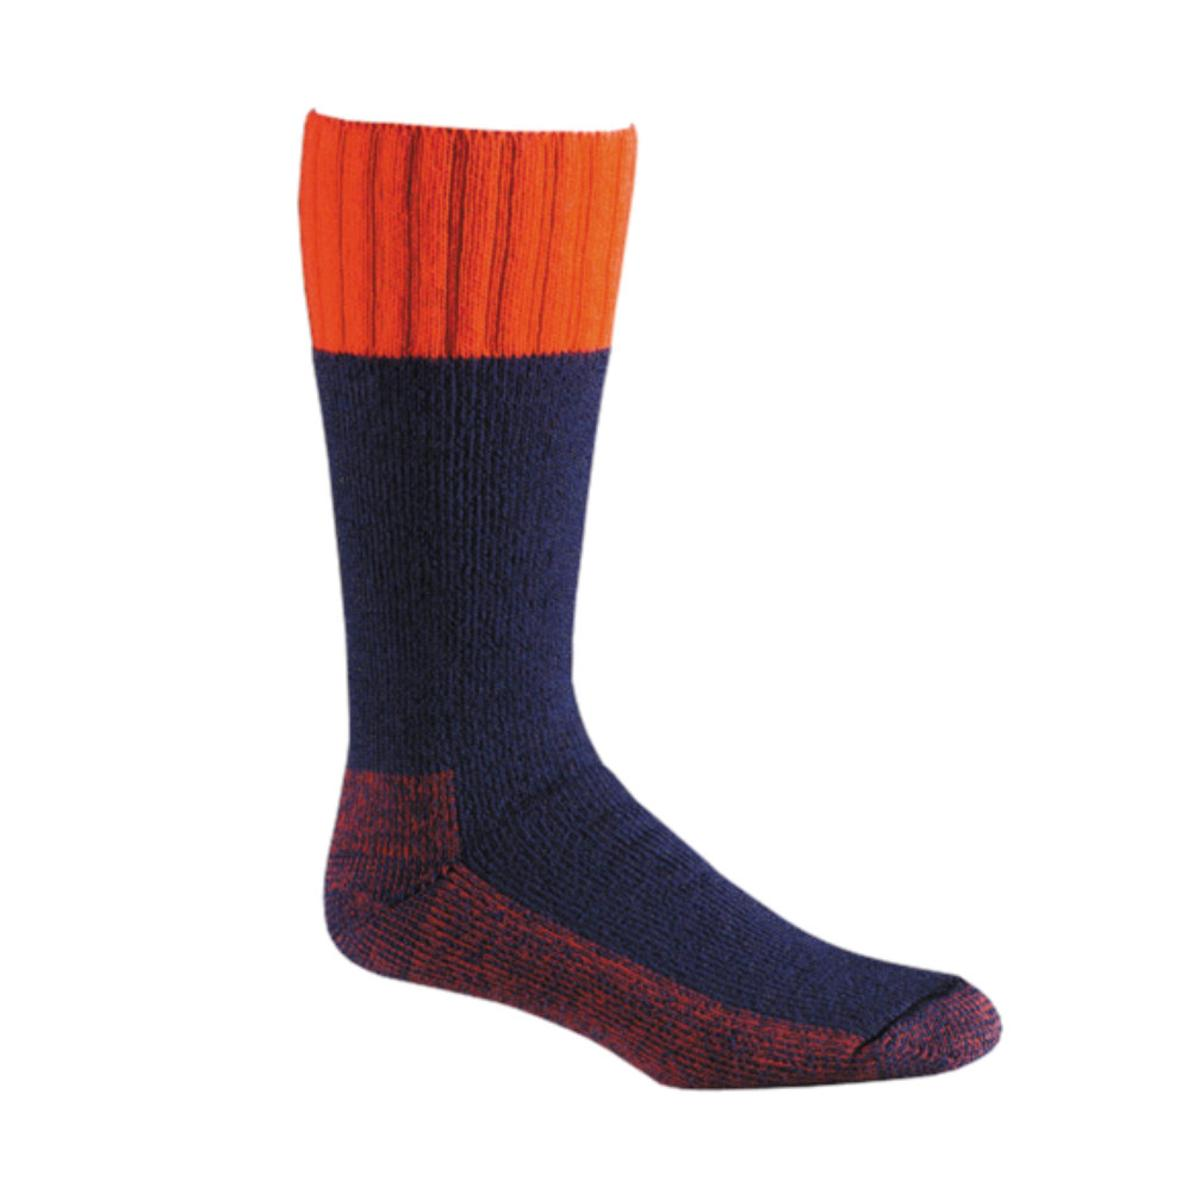 Fox River Extra-Heavyeight Wick Dry Tamarack Merino Wool Sock by Wool Socks